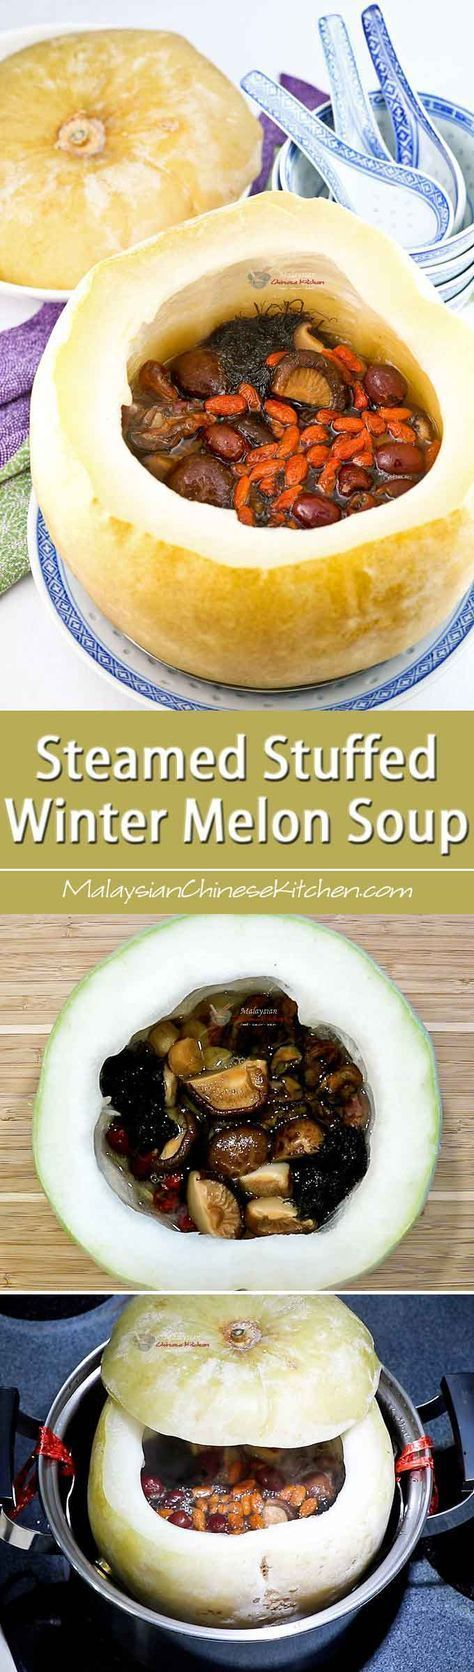 Steamed Stuffed Winter Melon Soup #wintermelon Make this special Steamed Stuffed Winter Melon Soup the centerpiece of your table spread for a family reunion or gathering. It is exciting and super delicious!| MalaysianChineseKitchen.com #wintermelon Steamed Stuffed Winter Melon Soup #wintermelon Make this special Steamed Stuffed Winter Melon Soup the centerpiece of your table spread for a family reunion or gathering. It is exciting and super delicious!| MalaysianChineseKitchen.com #wintermelon